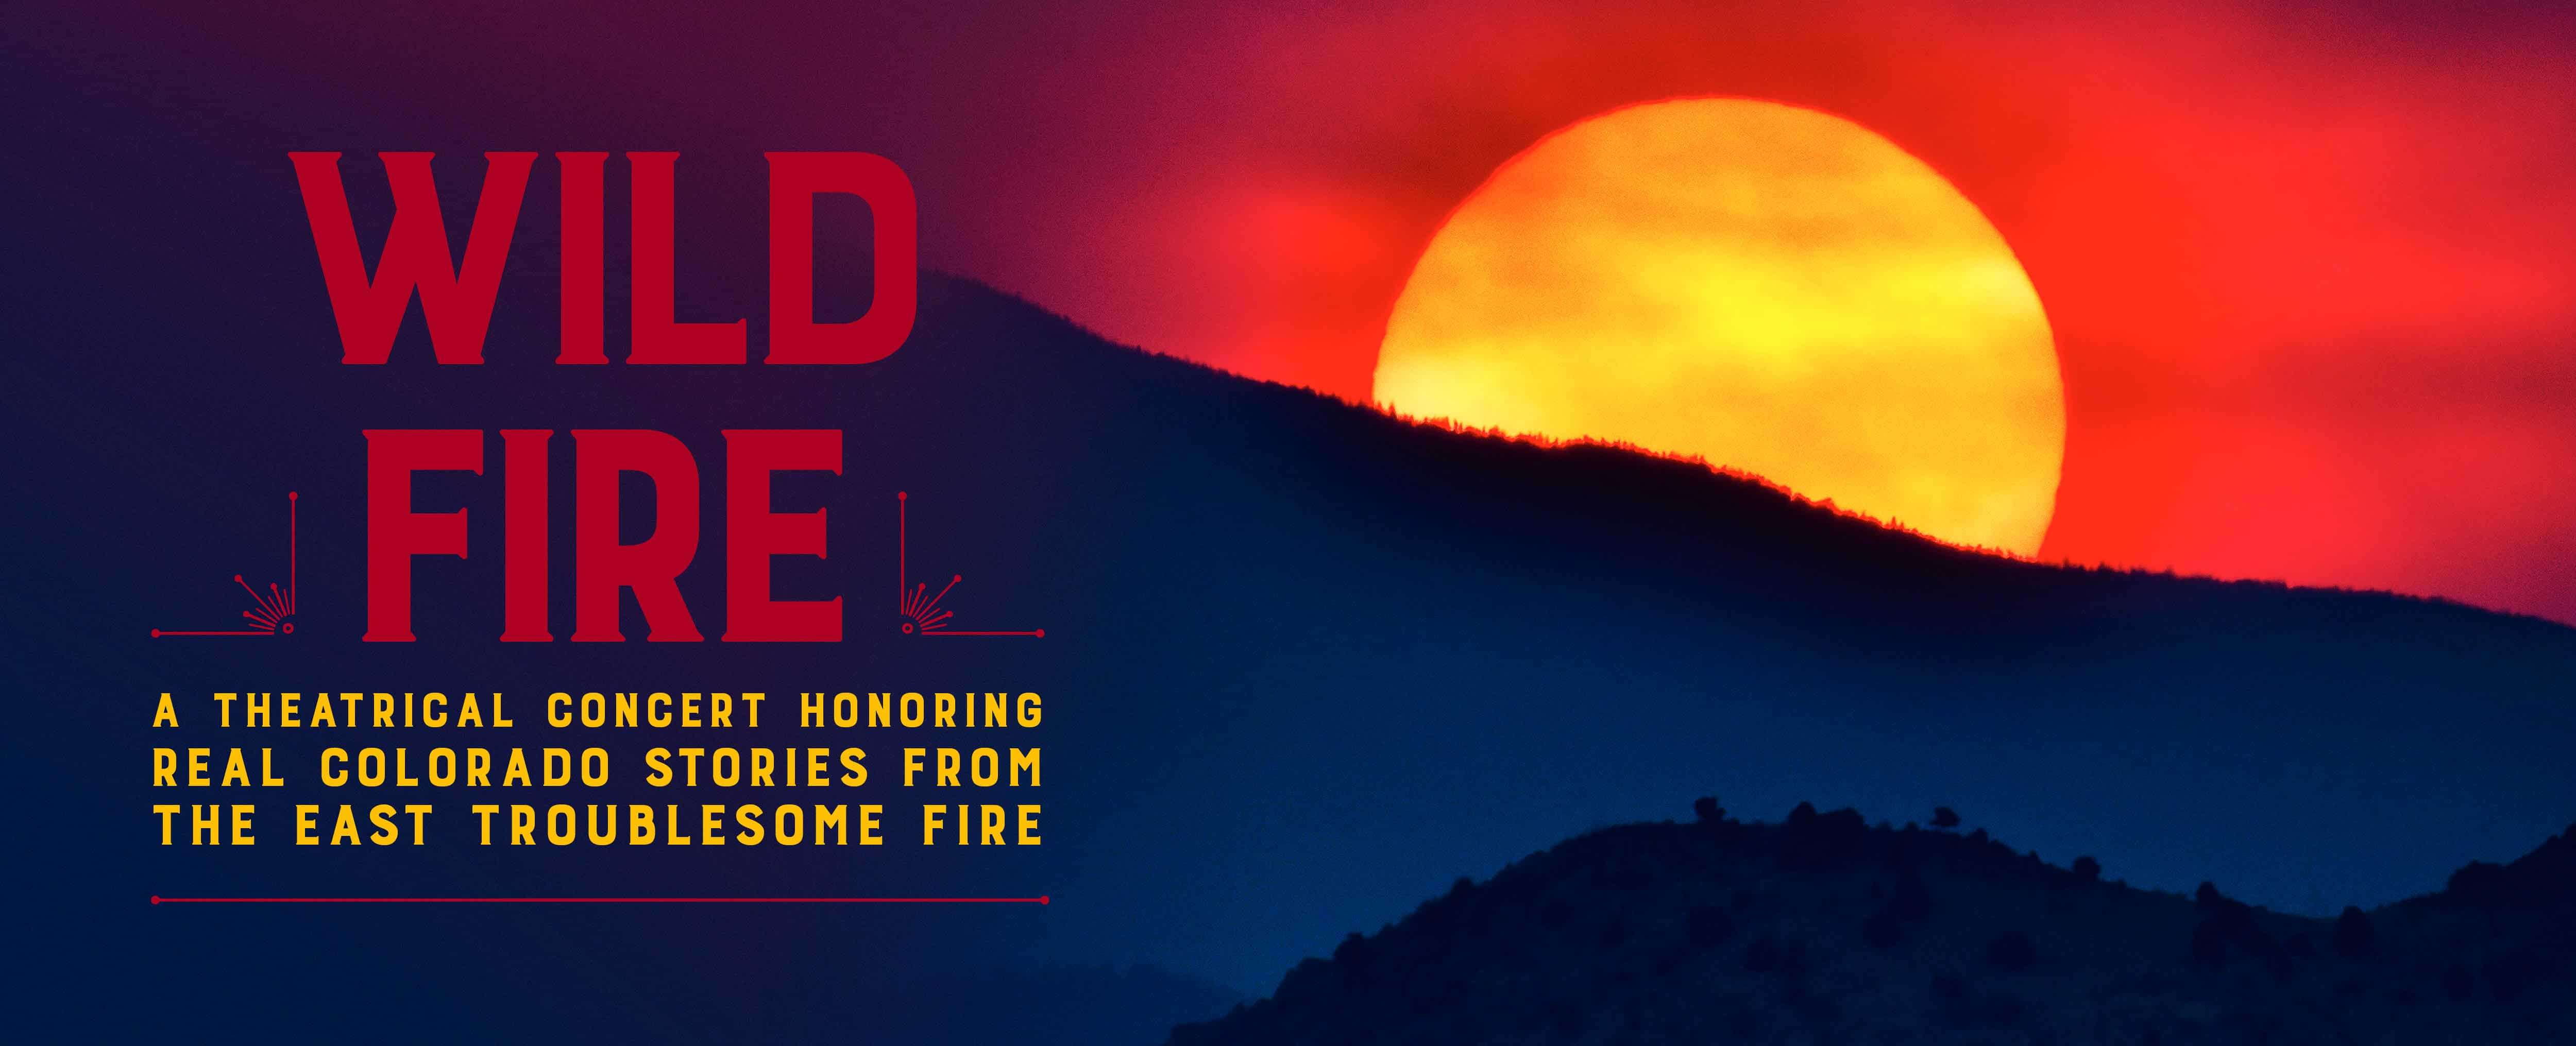 A mountain with a sun behind it, blazing red but covered by smoke, with the text: Wild Fire, a theatrical concert honoring real Colorado stories from the East Troublesome fire.